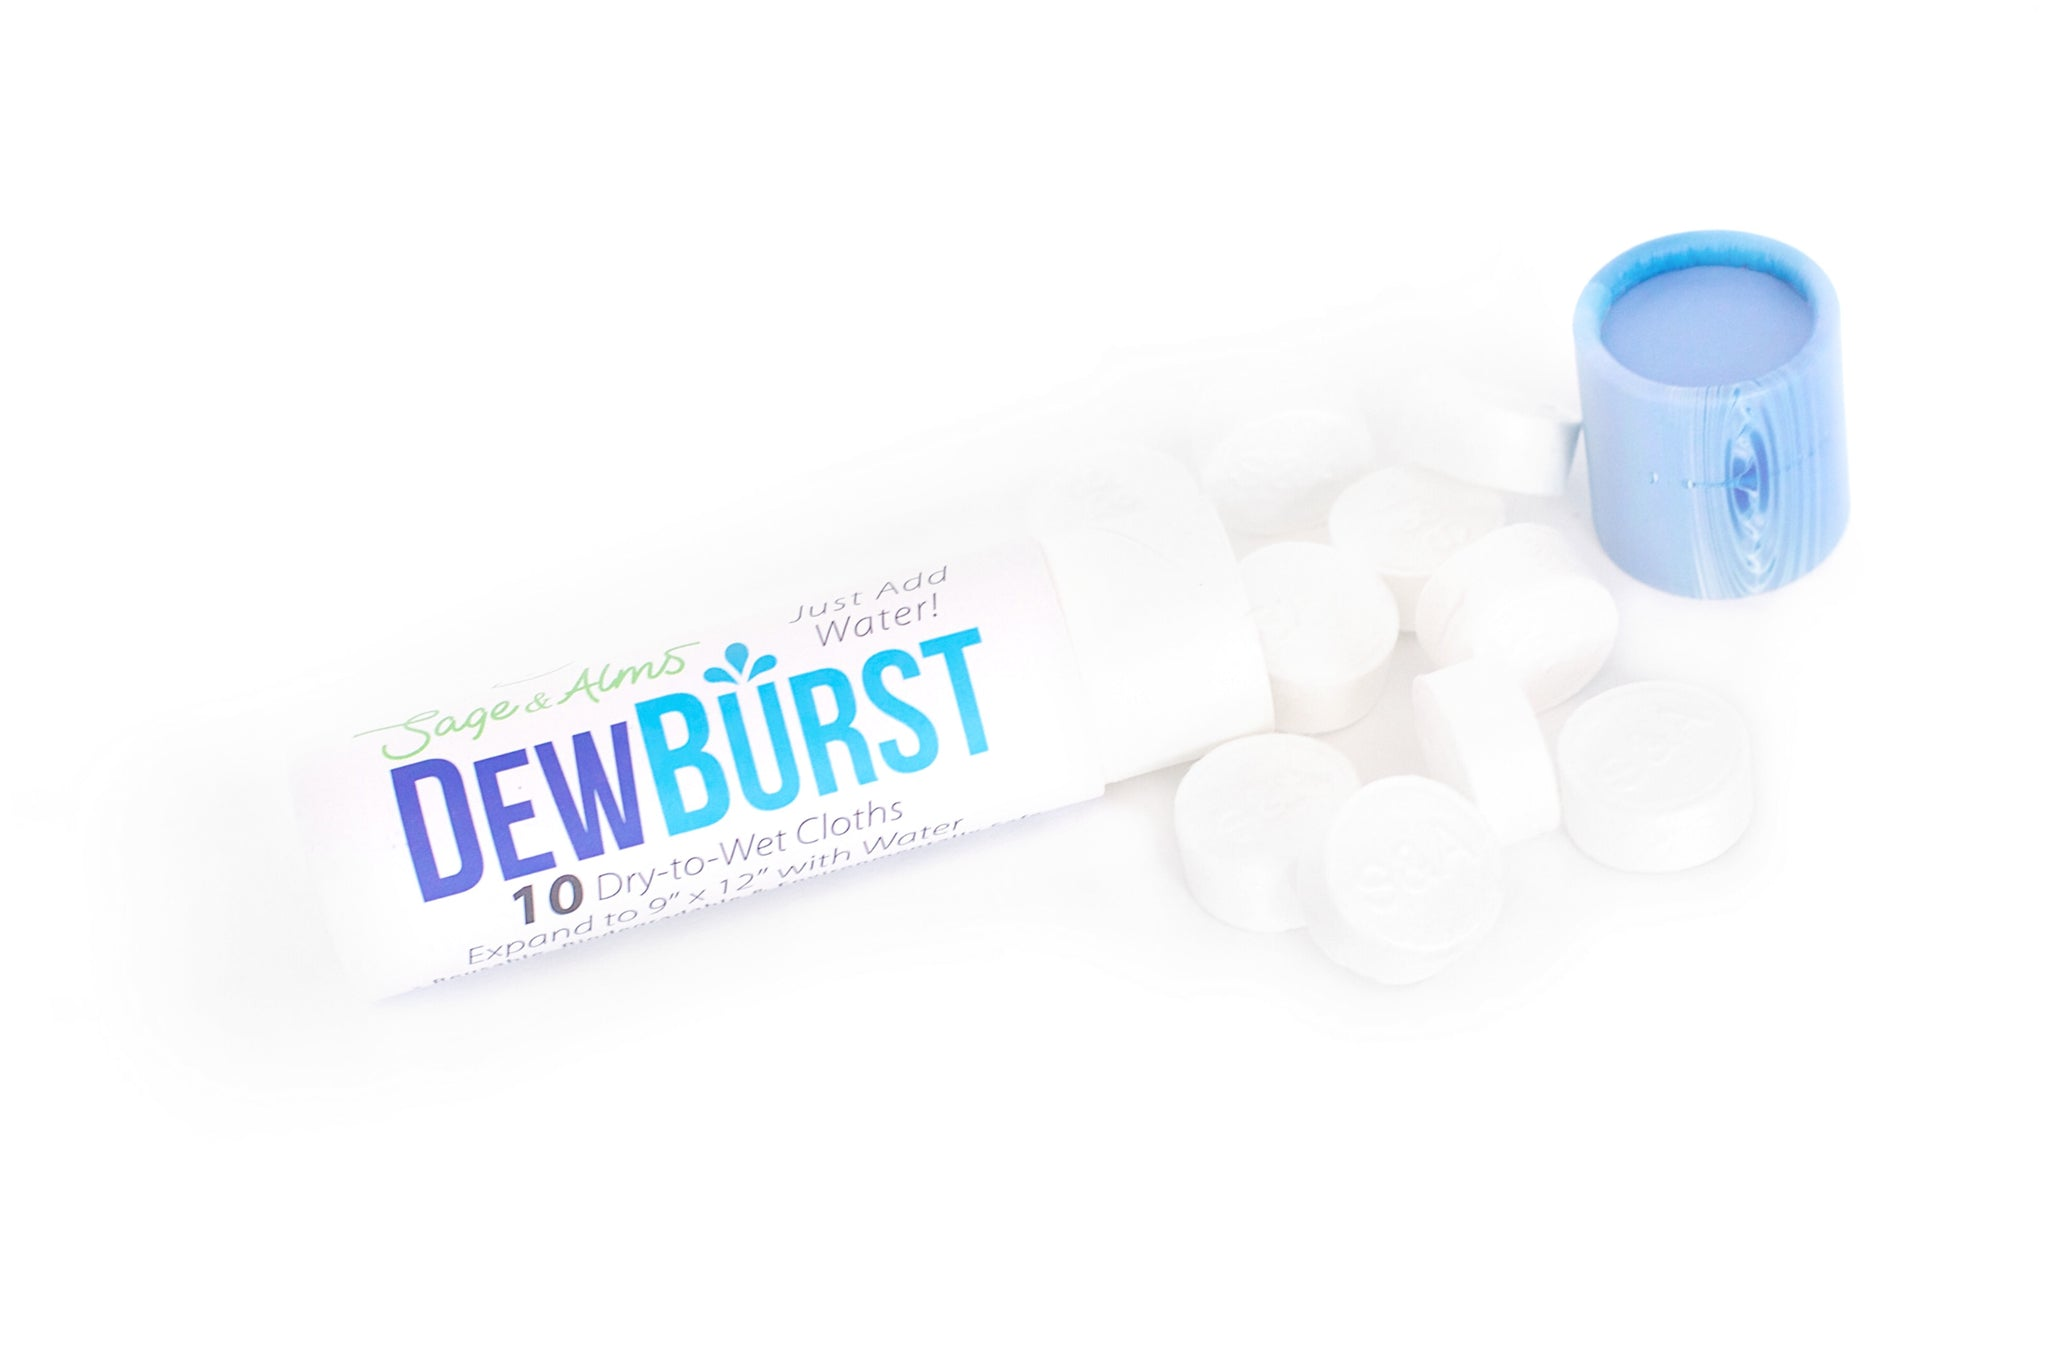 1 Tube | 10 Cloths | $3.99 Per Tube | DewBurst